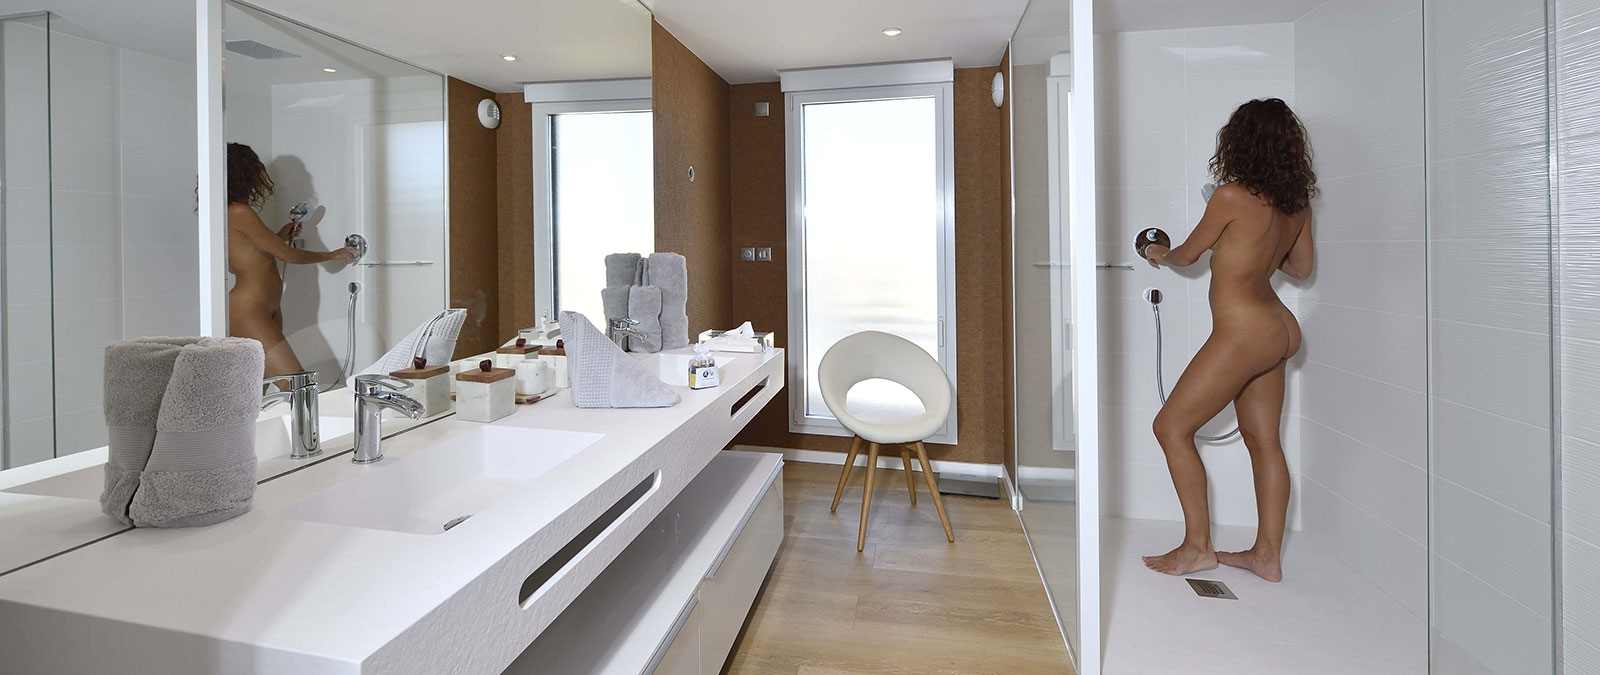 Bathroom with shower in Excellence duplex